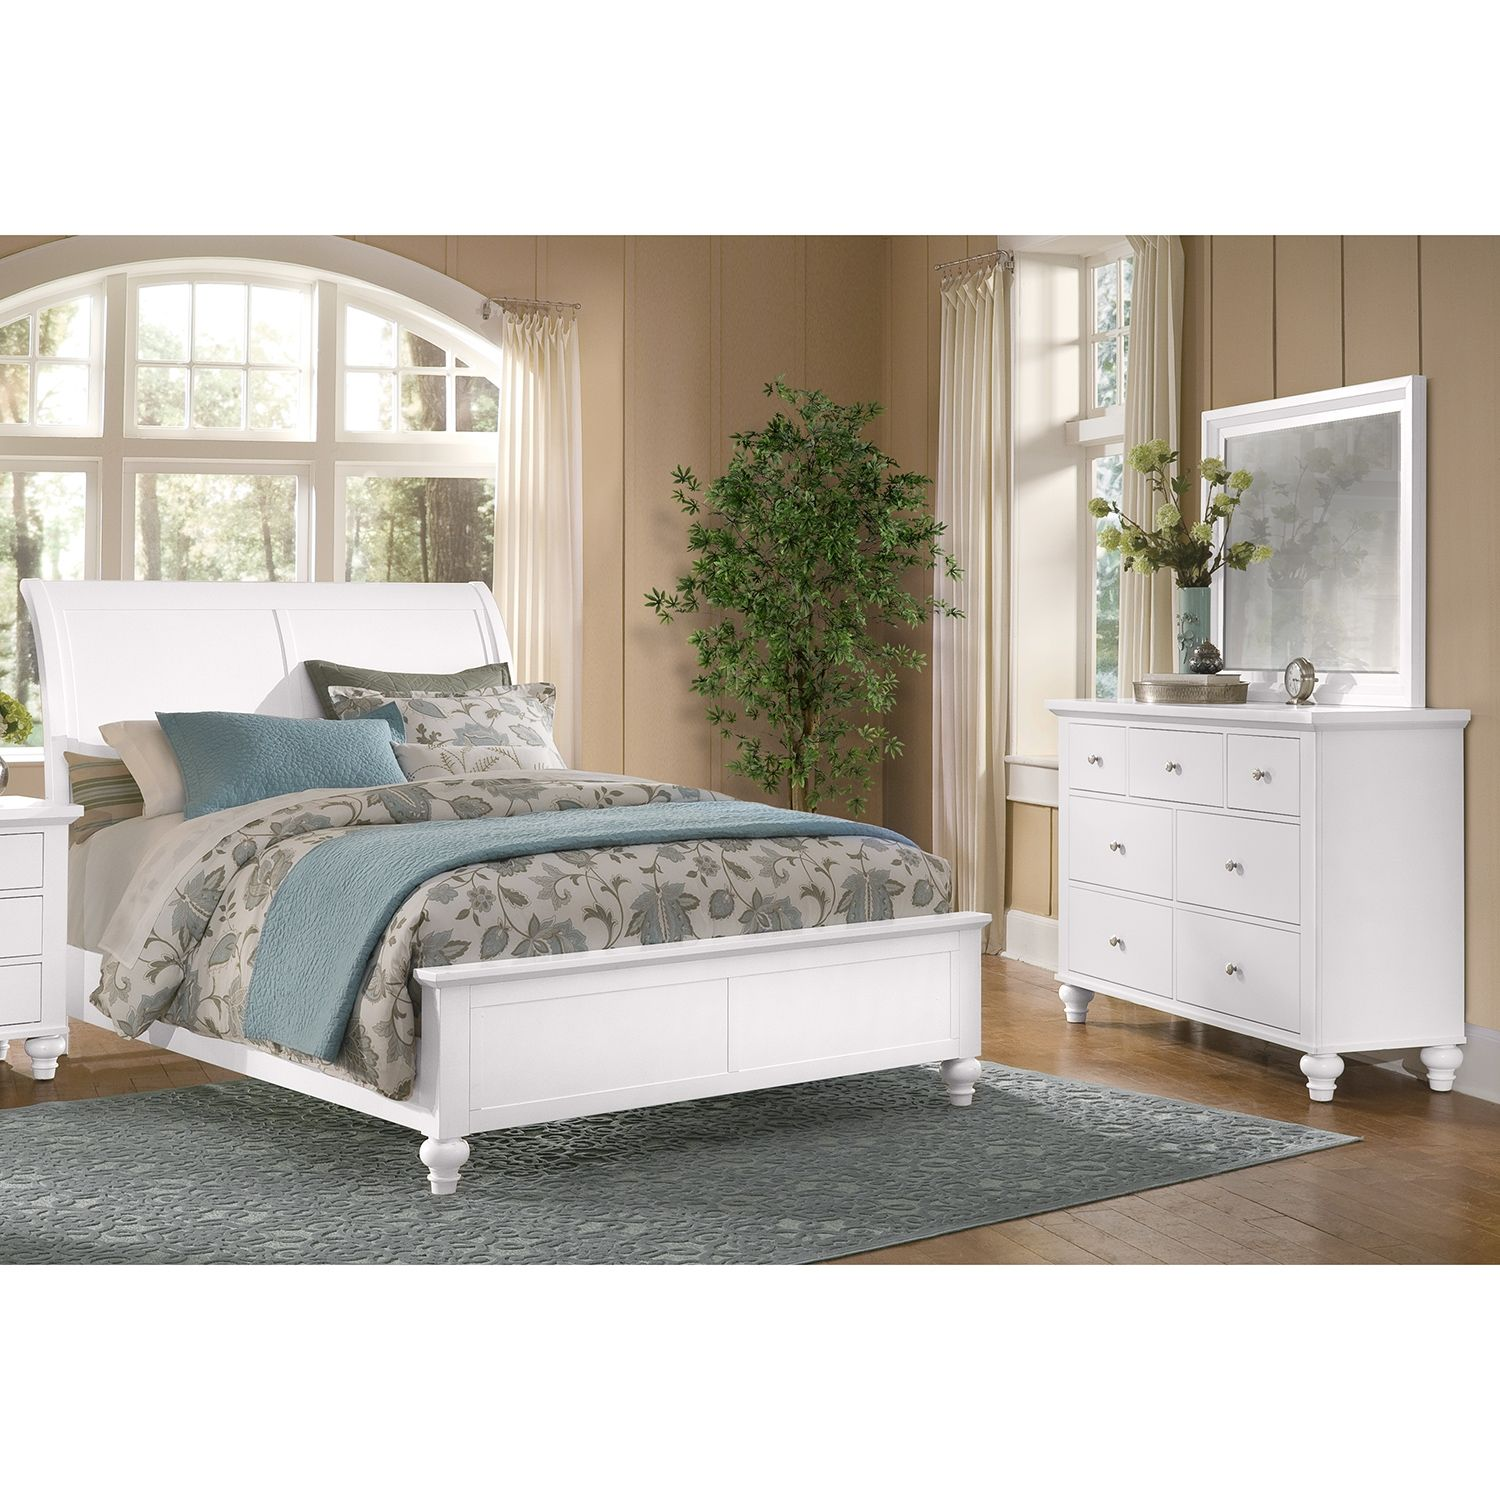 Charmed, Im Sure. Our Savannah White collection embraces all the airiness of a coastal escape, while keeping traditional design sensibilities in mind. The crisp linen white finish defines the soothing look, breathing fresh life into any décor. The sleigh-like headboard stands tall, nicely contrasting the modest stance of the footboard. The dresser has enduringly simple charm, with flat-front drawers, turned feet and chrome knobs. Five piece package includes complete King bed, dresser and…